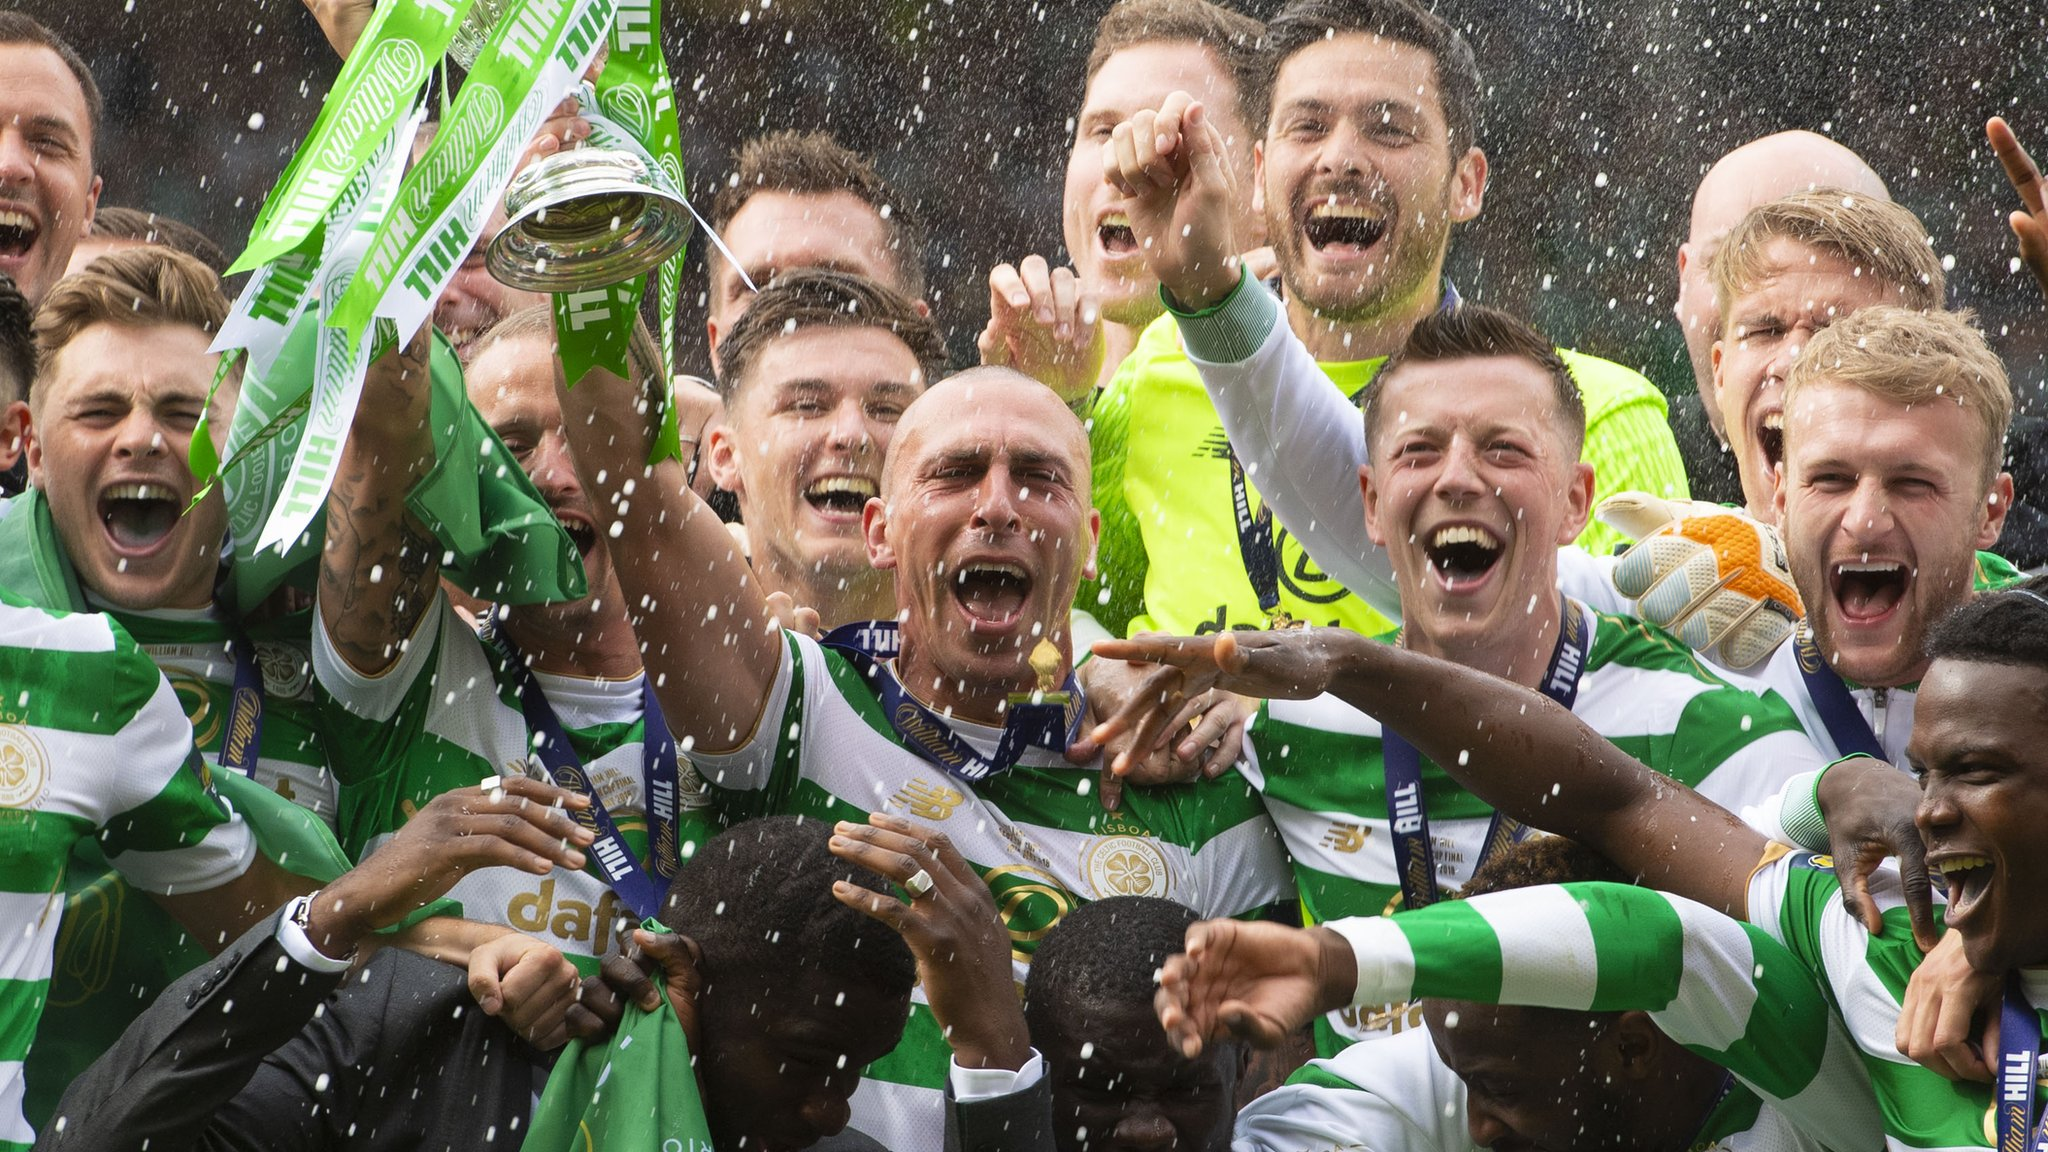 Scottish Cup draw: Holders Celtic to face Hibernian in quarter-finals